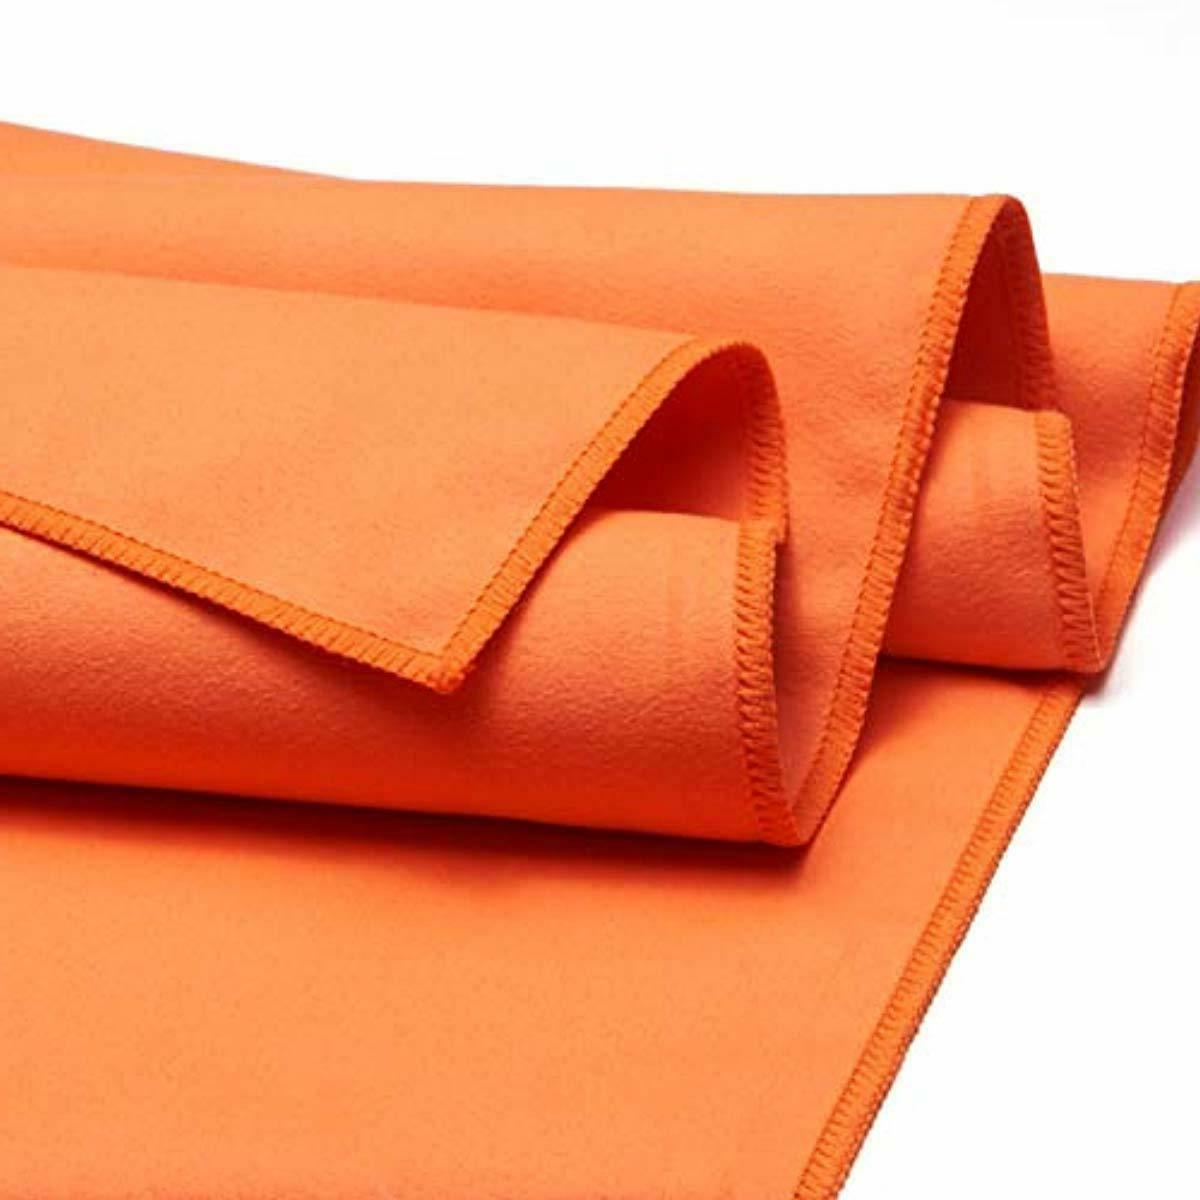 Microfiber Travel Towel 2 Pack Quick Dry Sports Beach Camping